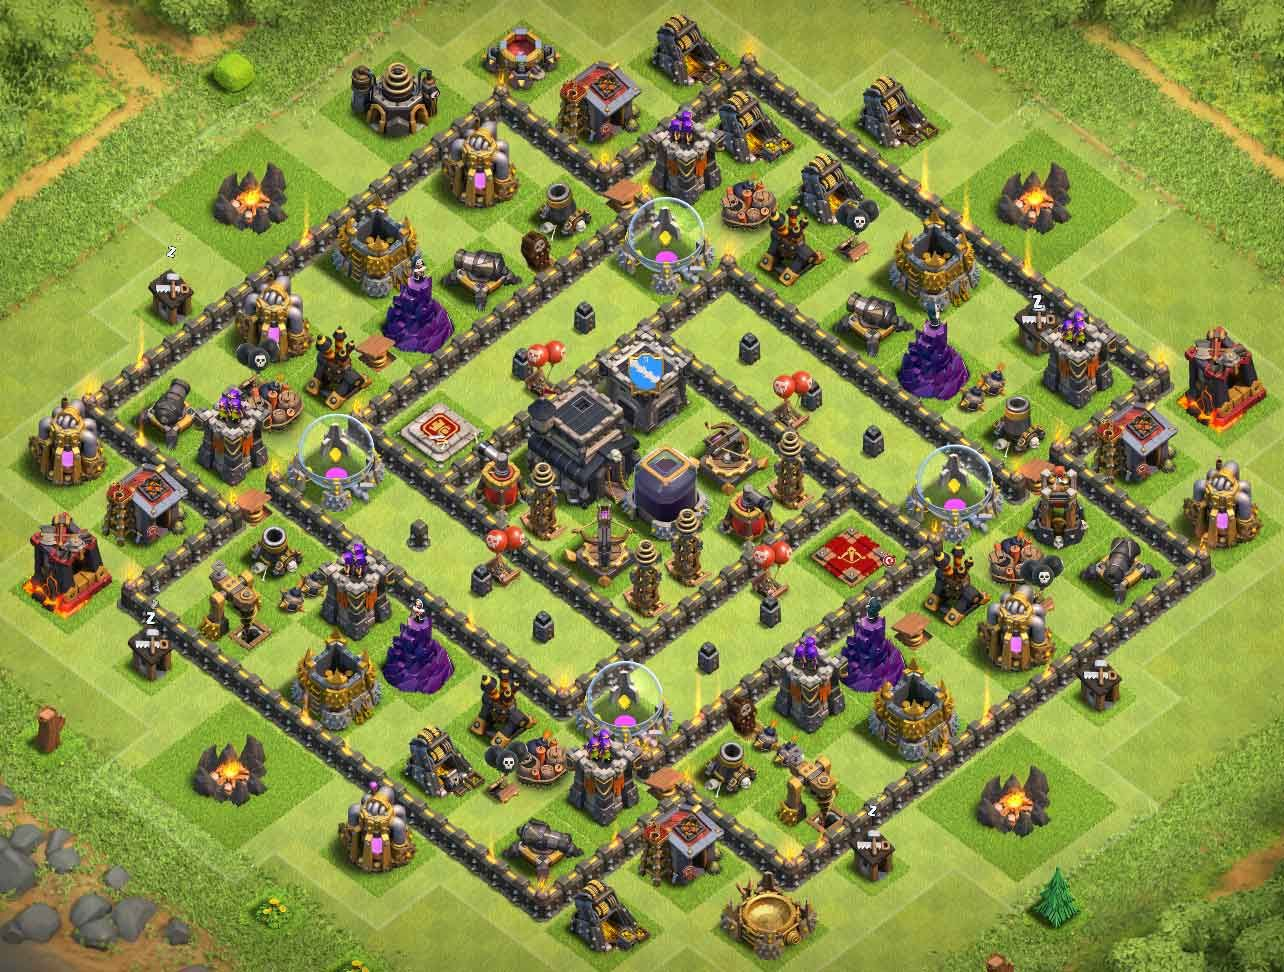 Best Th9 Dark Elixir Farming Base 2019 Base Coc Th 9 6